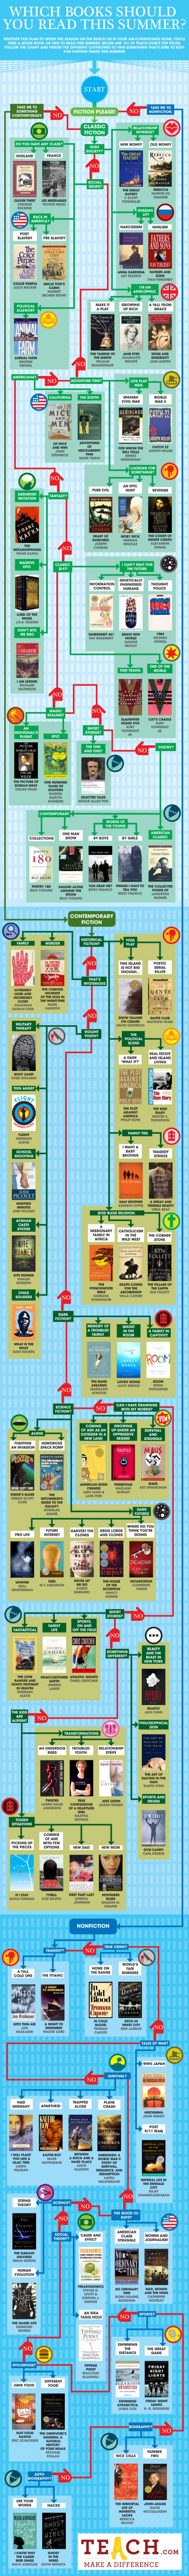 summer-reading-flowchart